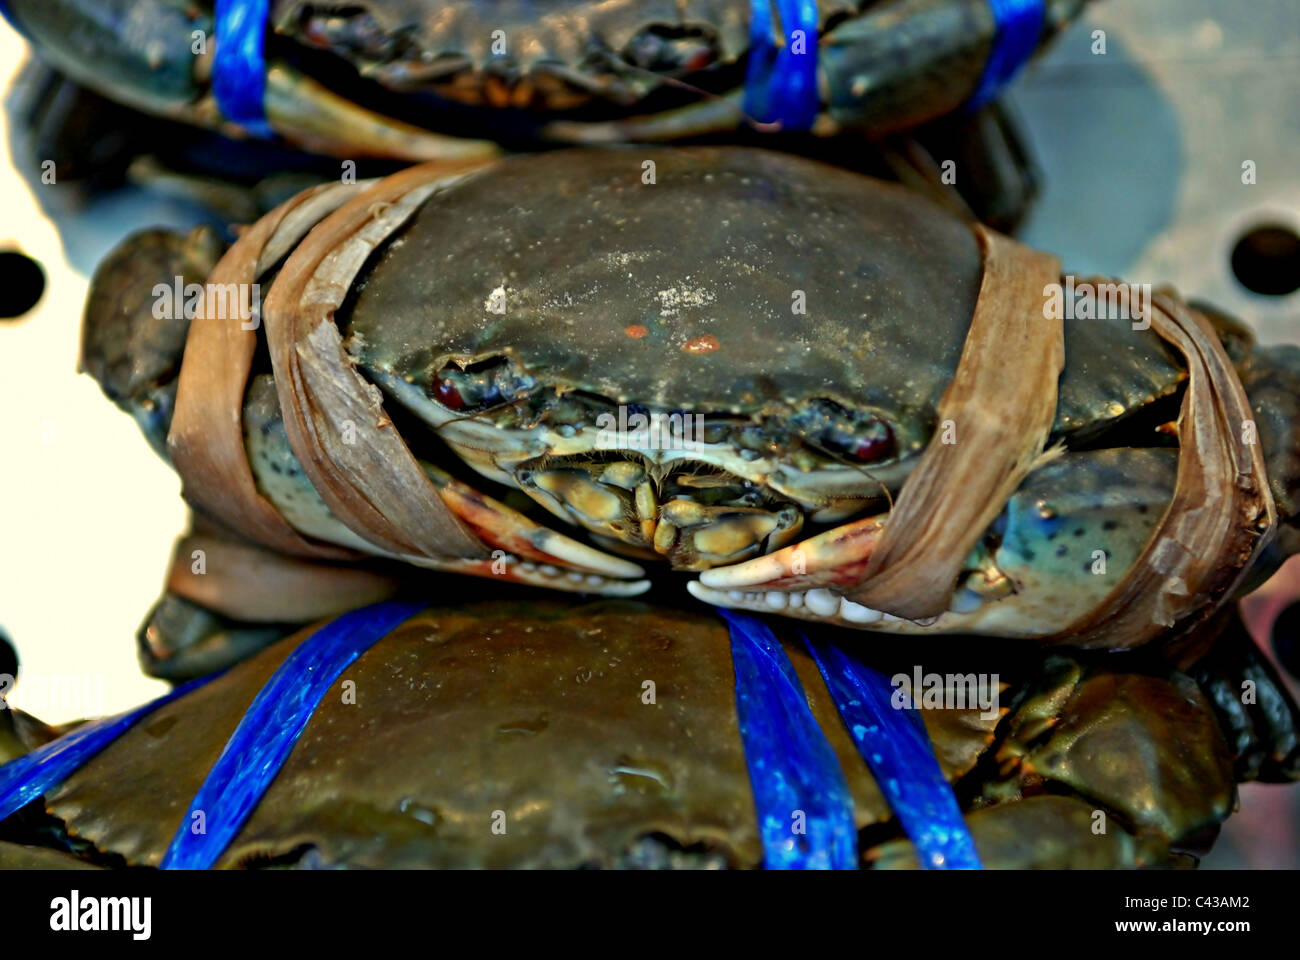 Close-up of Live Soft-shell Blue Crabs ready for sale at a